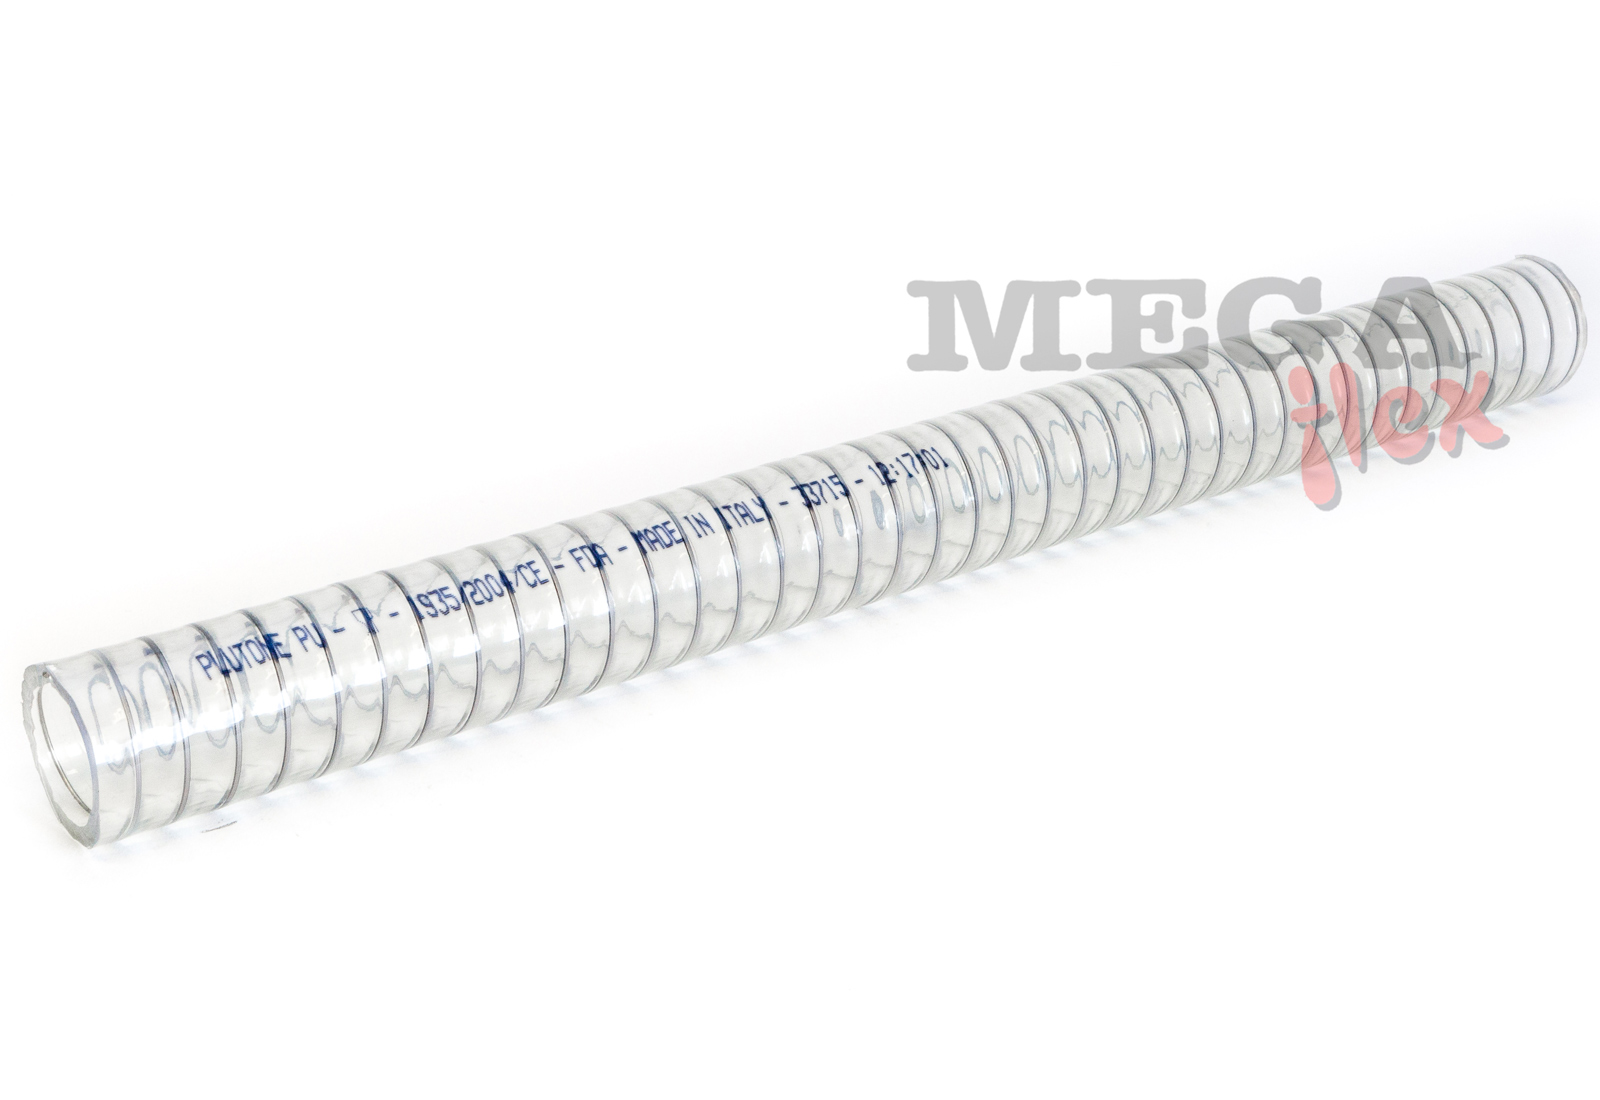 Plutone PU - Clear Ether Polyurethane Suction and Delivery Hose Reinforced with Stainless Steel Helix